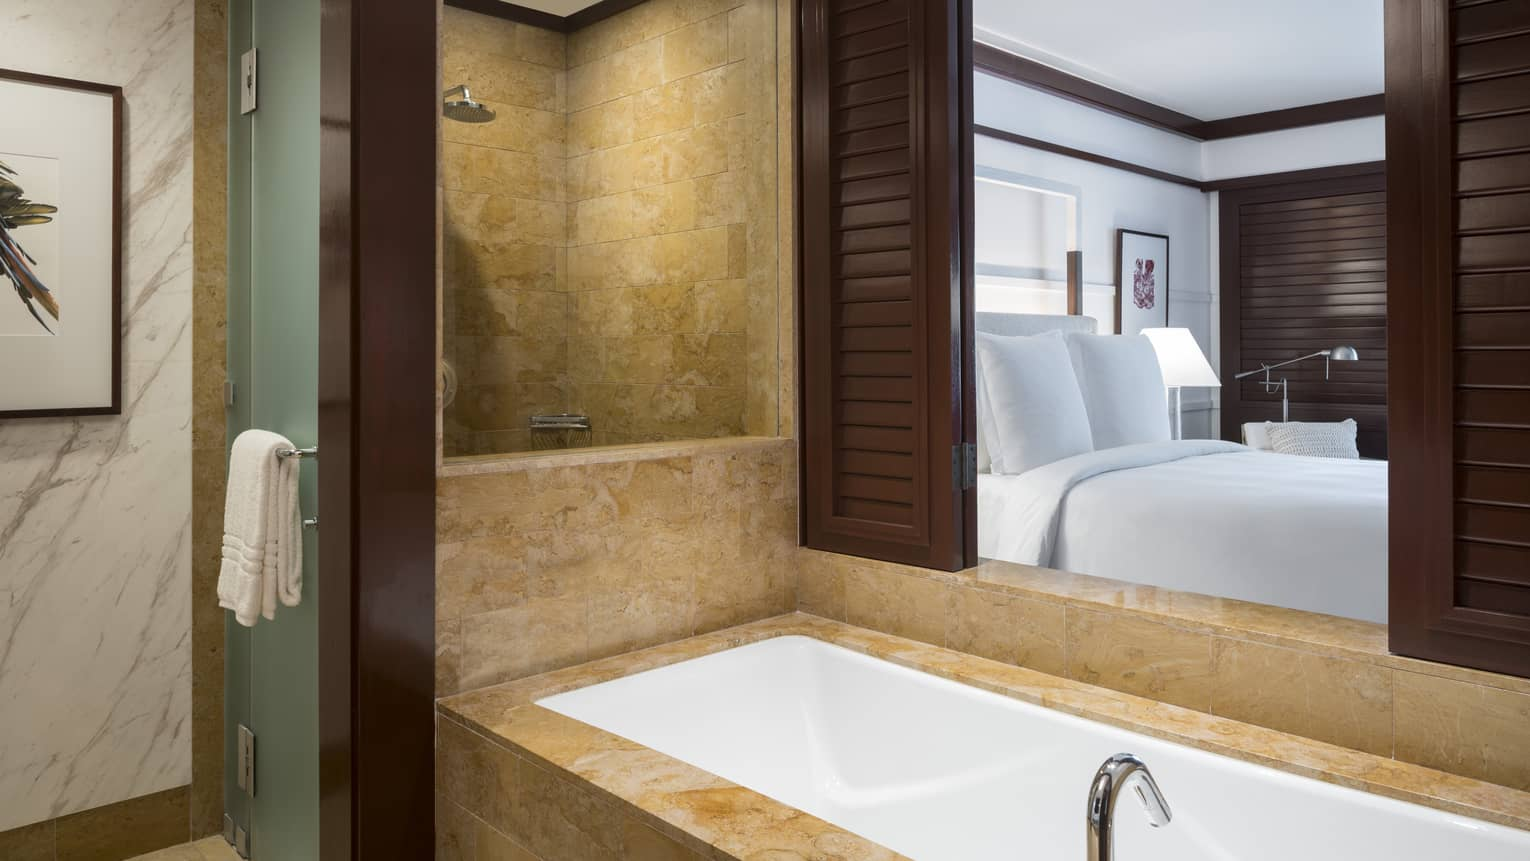 Bathroom with Open Shutters Onlooking Bedroom